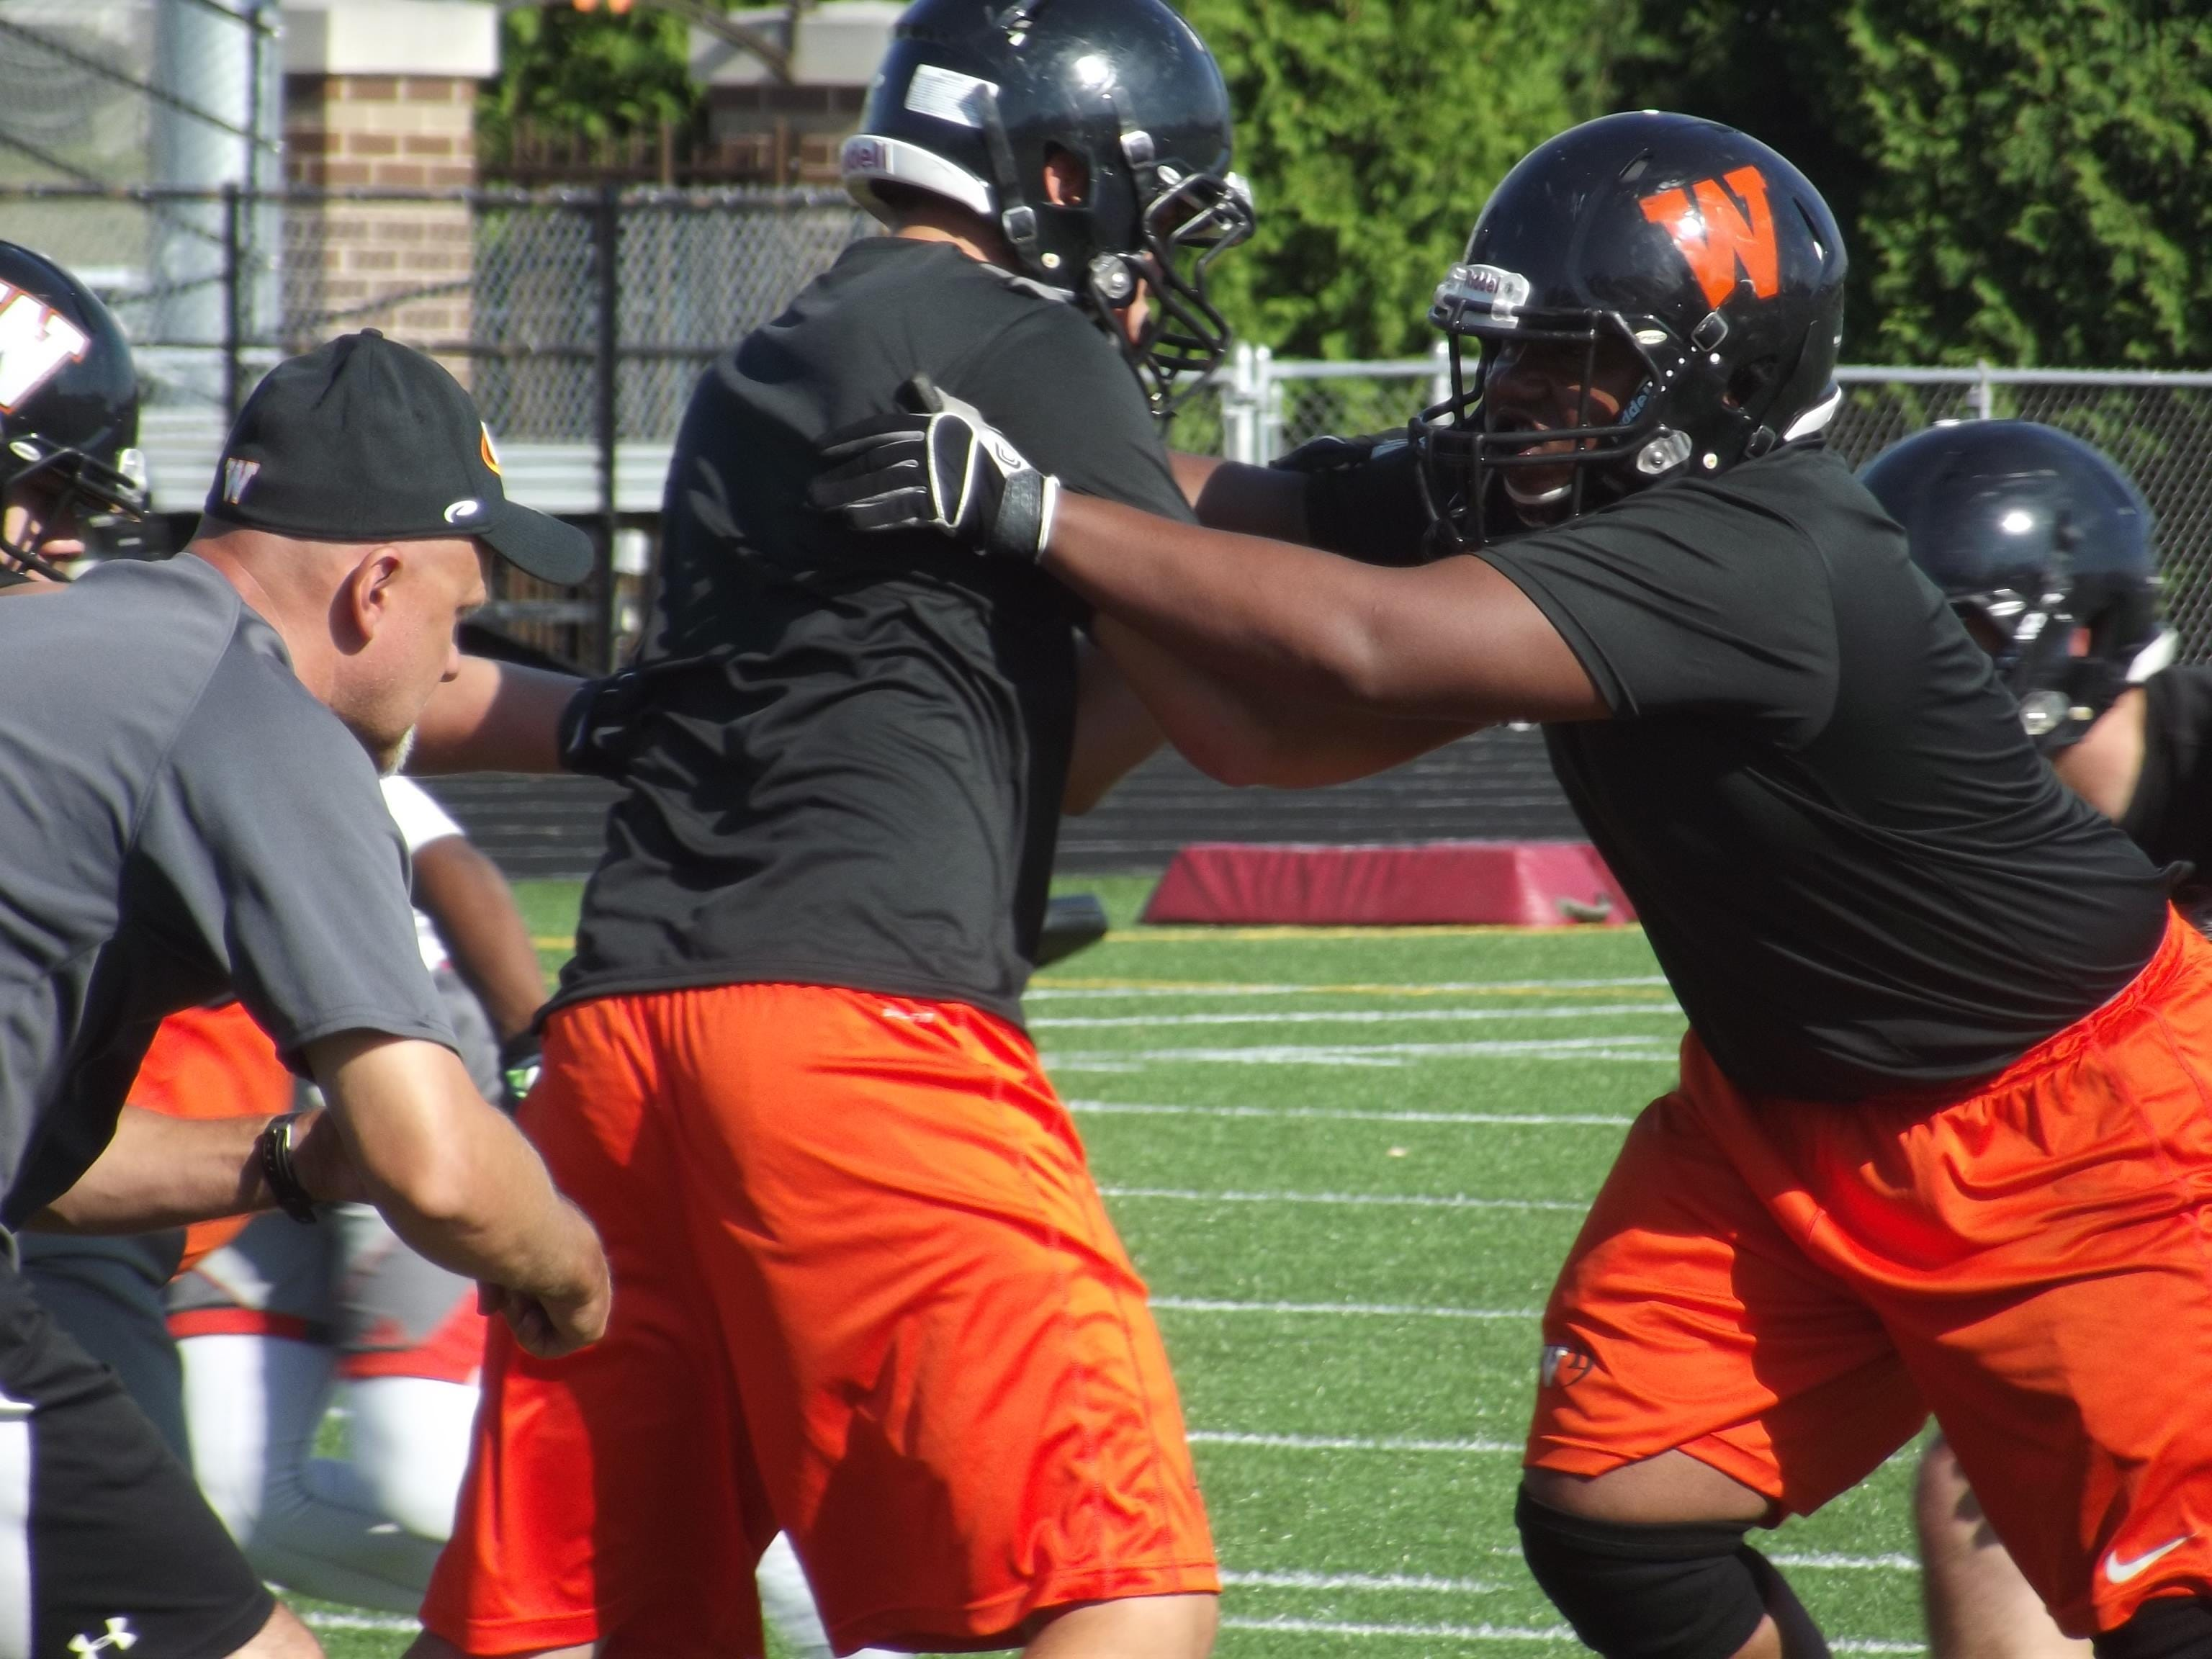 West De Pere senior defensive lineman Malcolm Smalls goes through a defensive drill with coach Jack Batten at practice Wednesday.